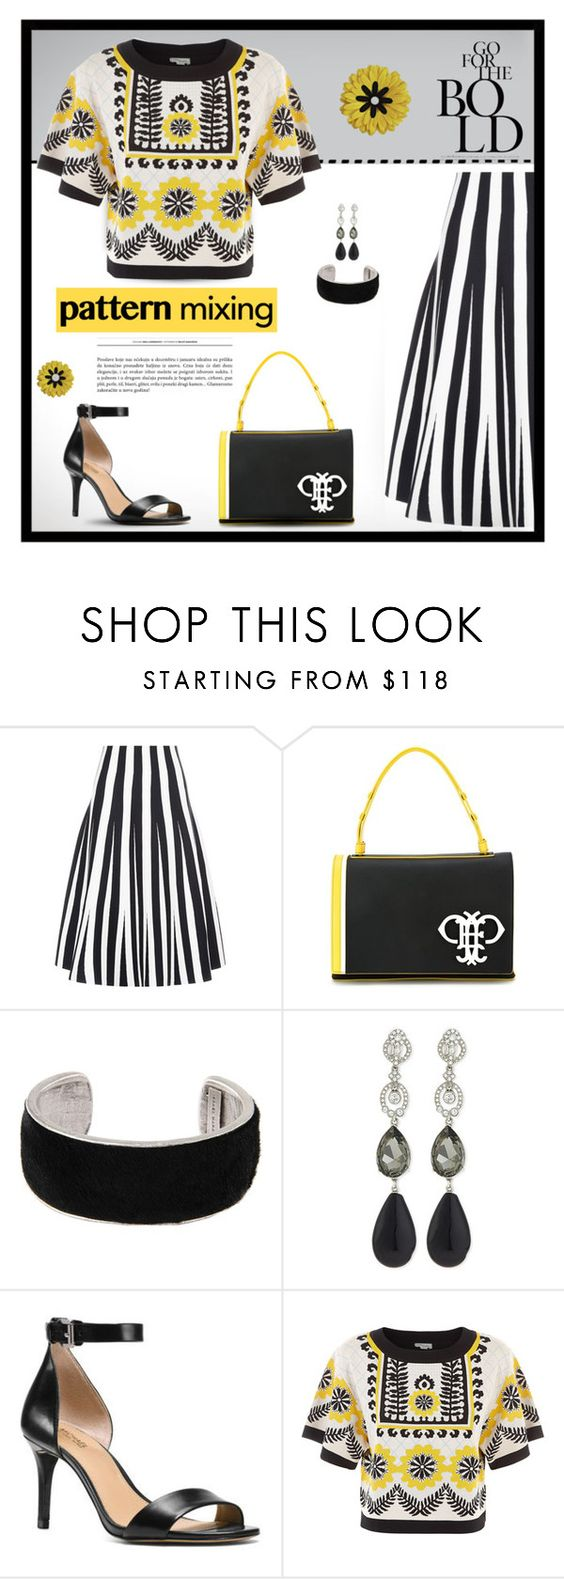 """Pattern Mix Master"" by sohosue ❤ liked on Polyvore featuring Alexander Wang, Emilio Pucci, Isabel Marant, Oscar de la Renta, MICHAEL Michael Kors, Temperley London and patternmixing"